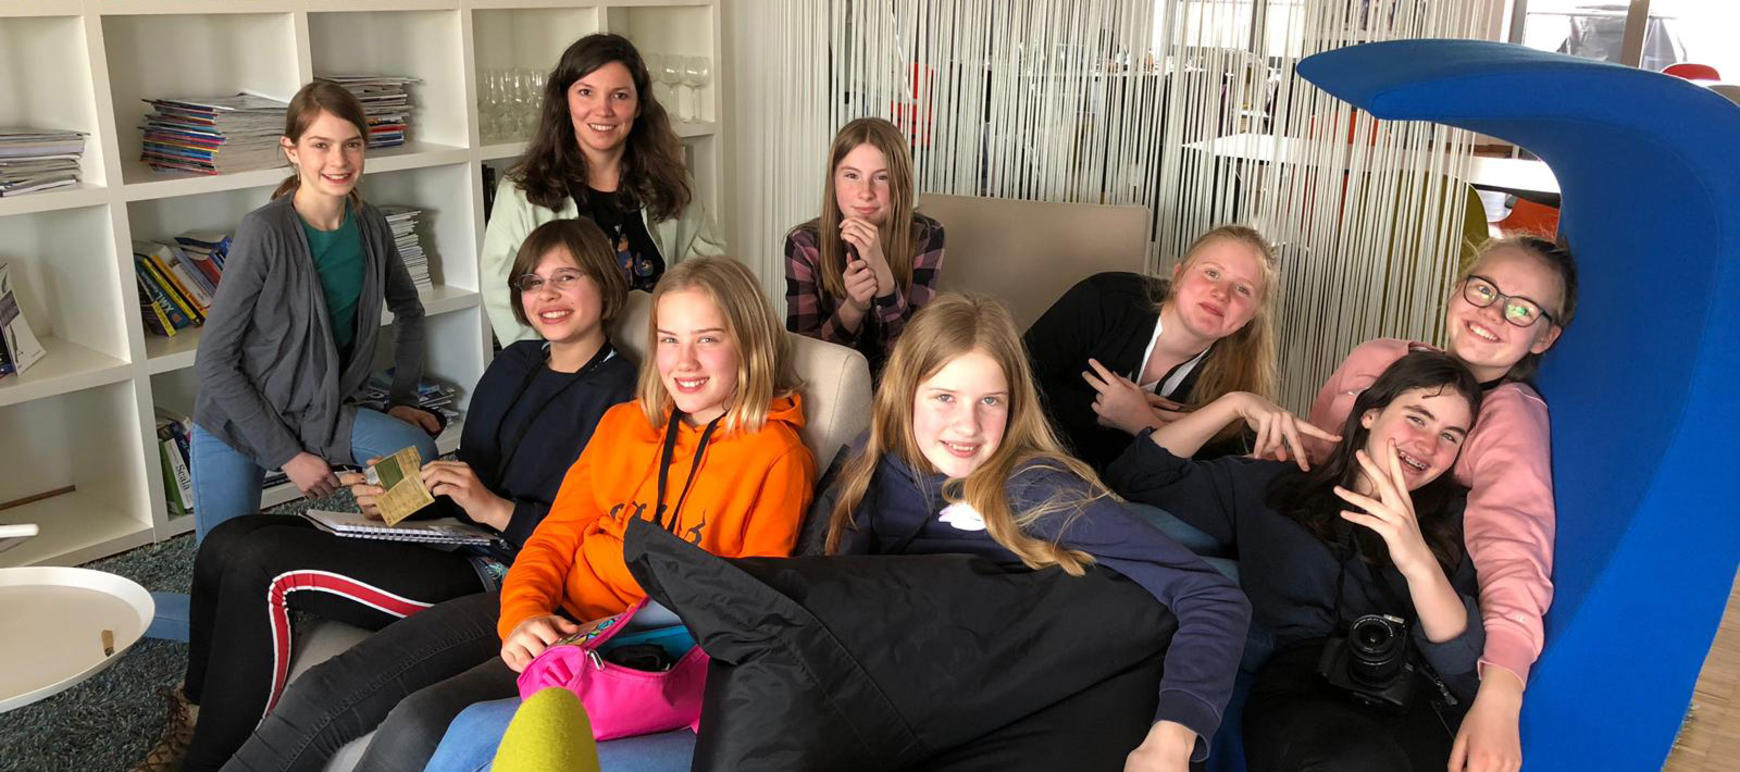 Girlsday Frankfurt HR